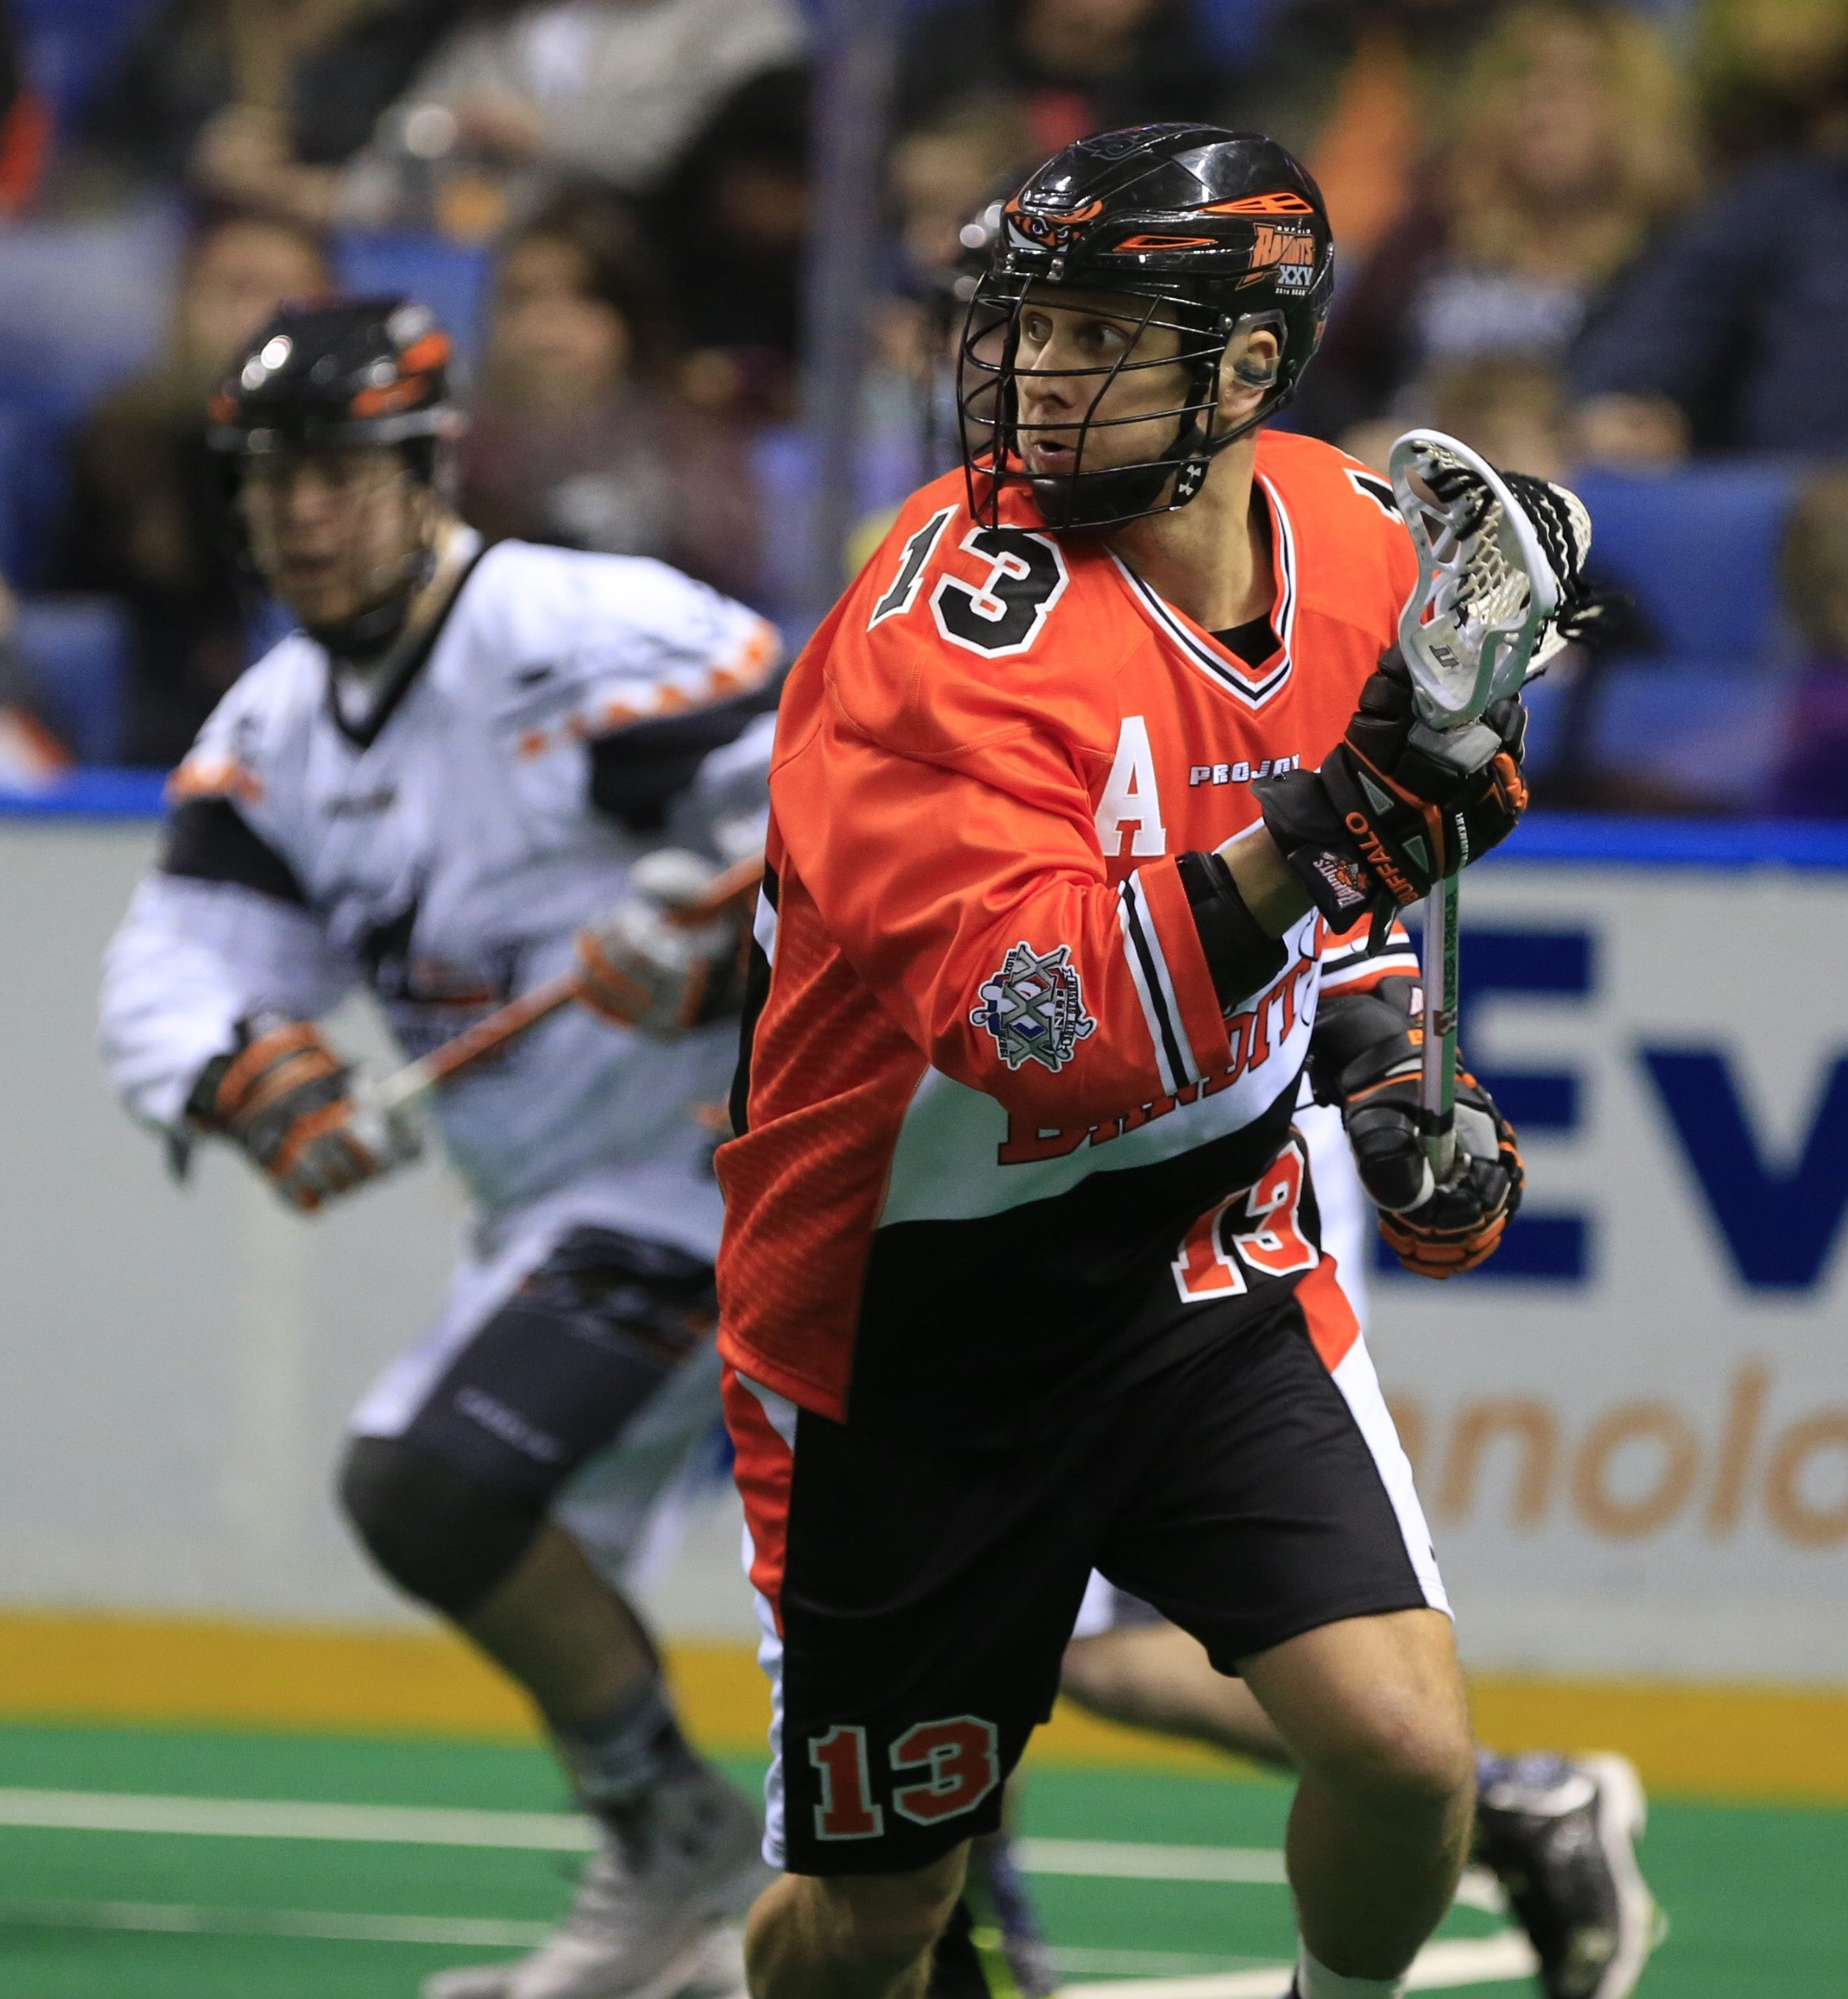 David Brock of the Bandits looks for room against the New England Black Wolves on Saturday night.